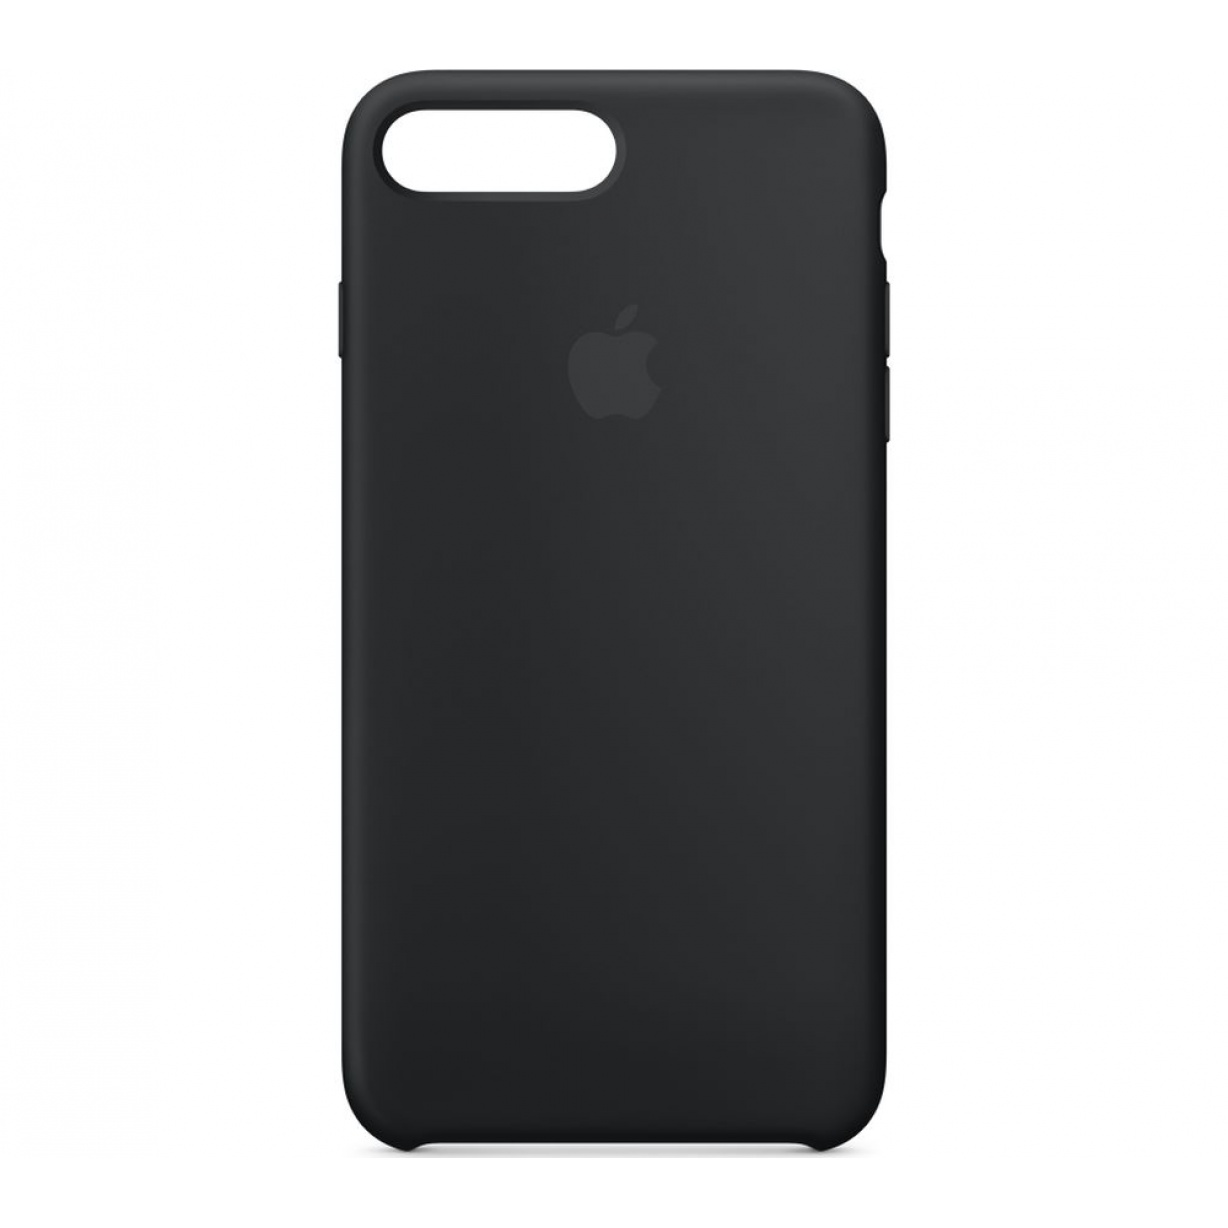 Nugarėlė Apple iPhone 7 Plus/8 Plus Silicone Case Black